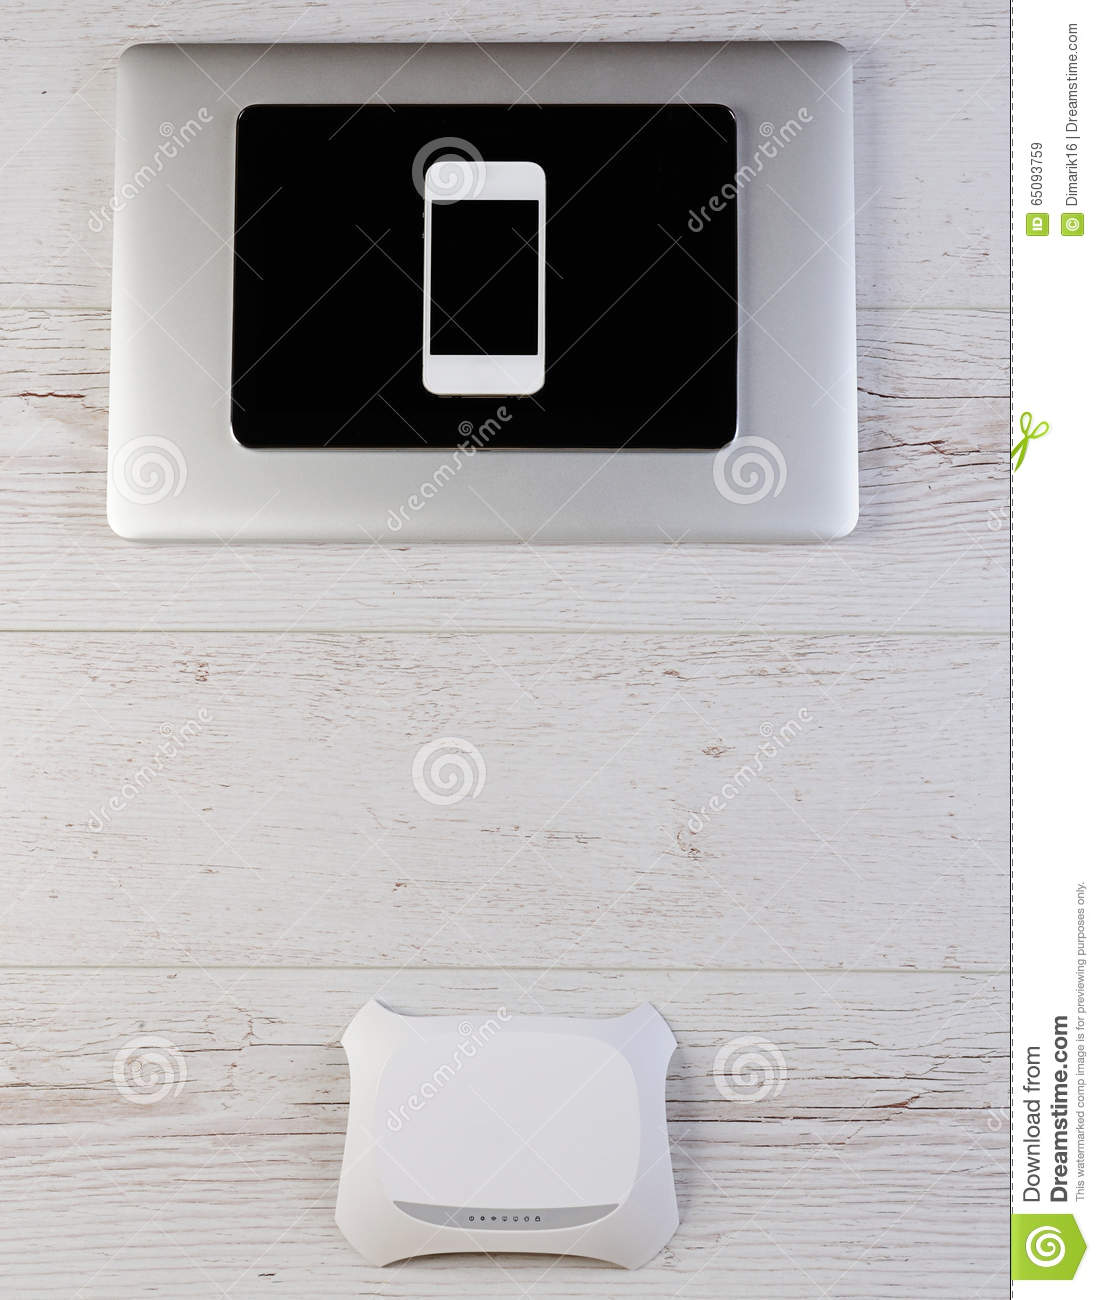 Wifi router connection stock image image of tablet computer 65093759 download wifi router connection stock image image of tablet computer 65093759 greentooth Image collections